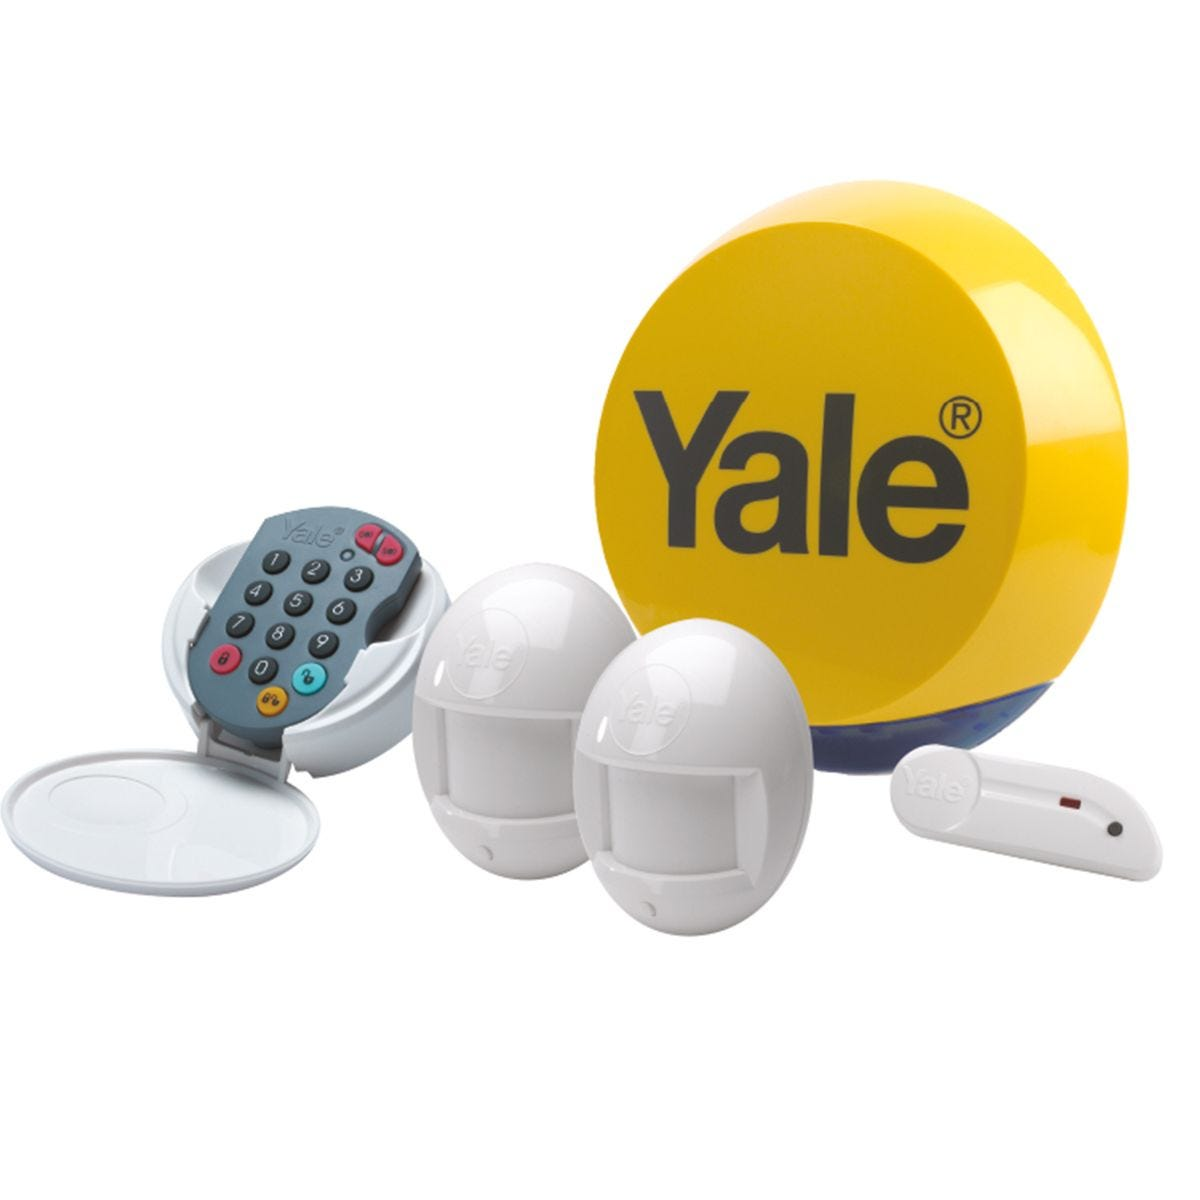 Yale Essentials Alarm Kit